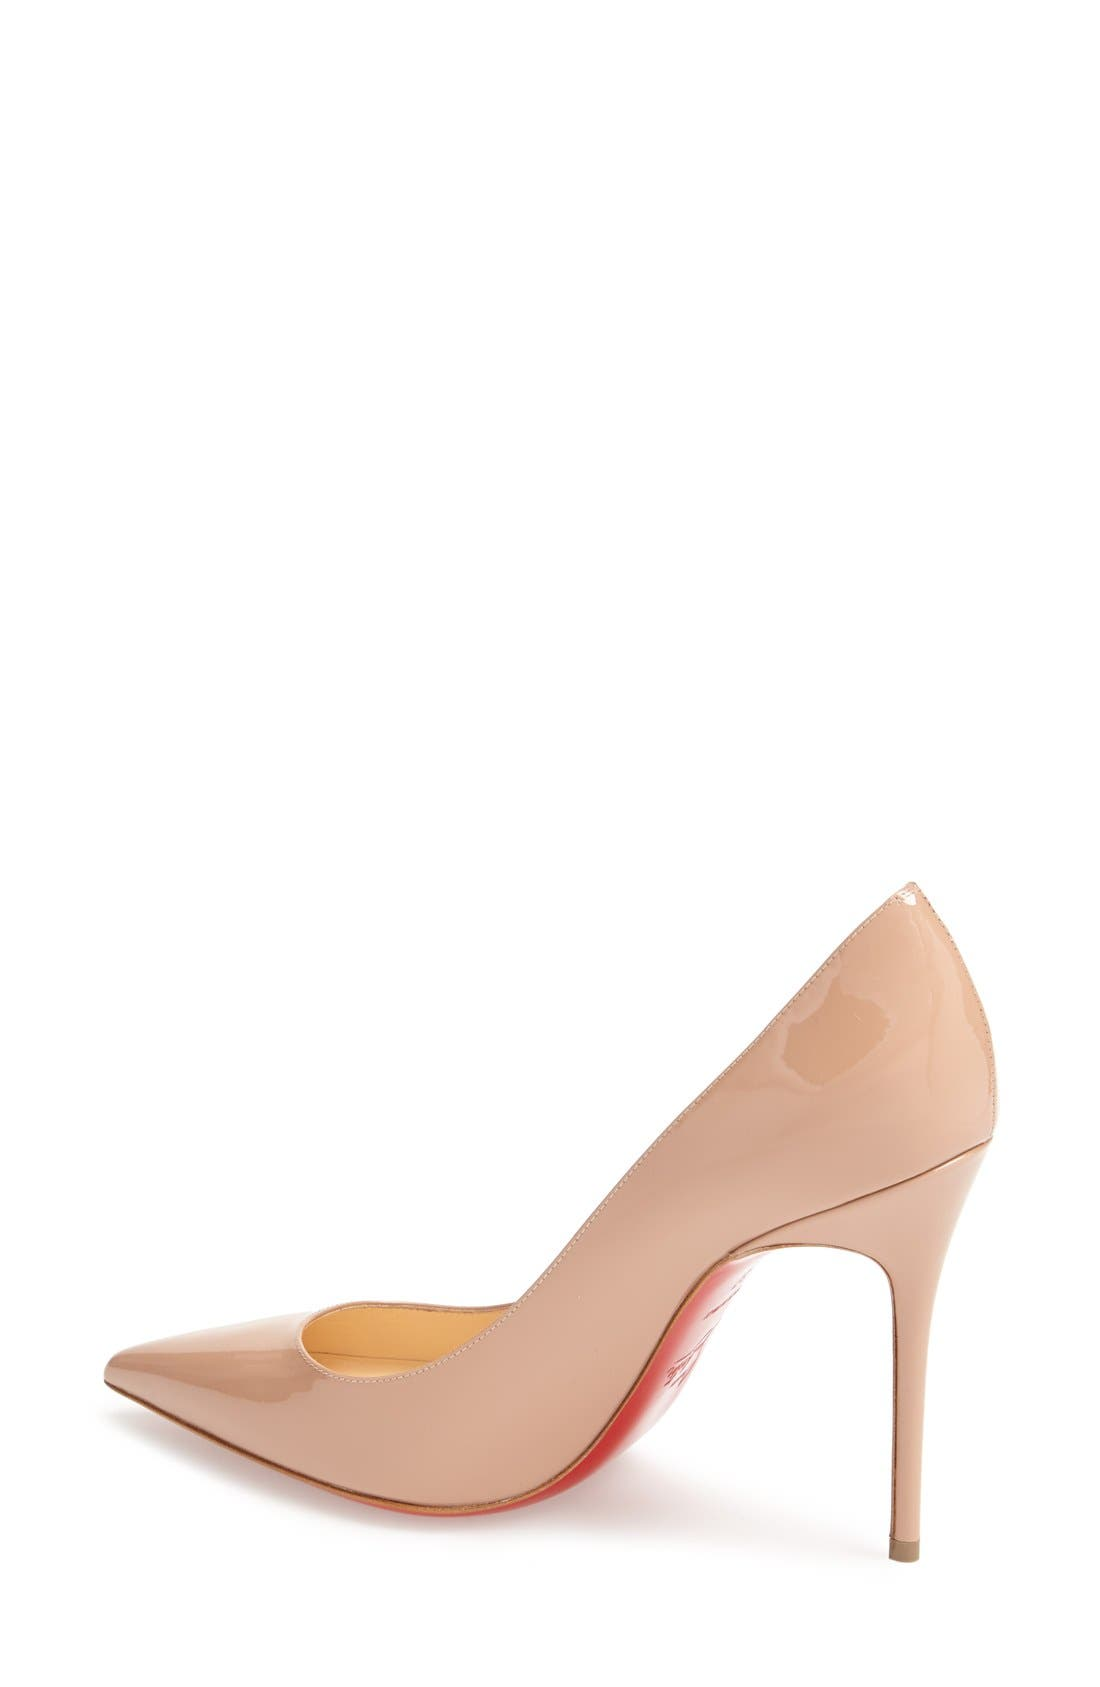 'Decollete' Pointy Toe Pump,                             Alternate thumbnail 3, color,                             NUDE